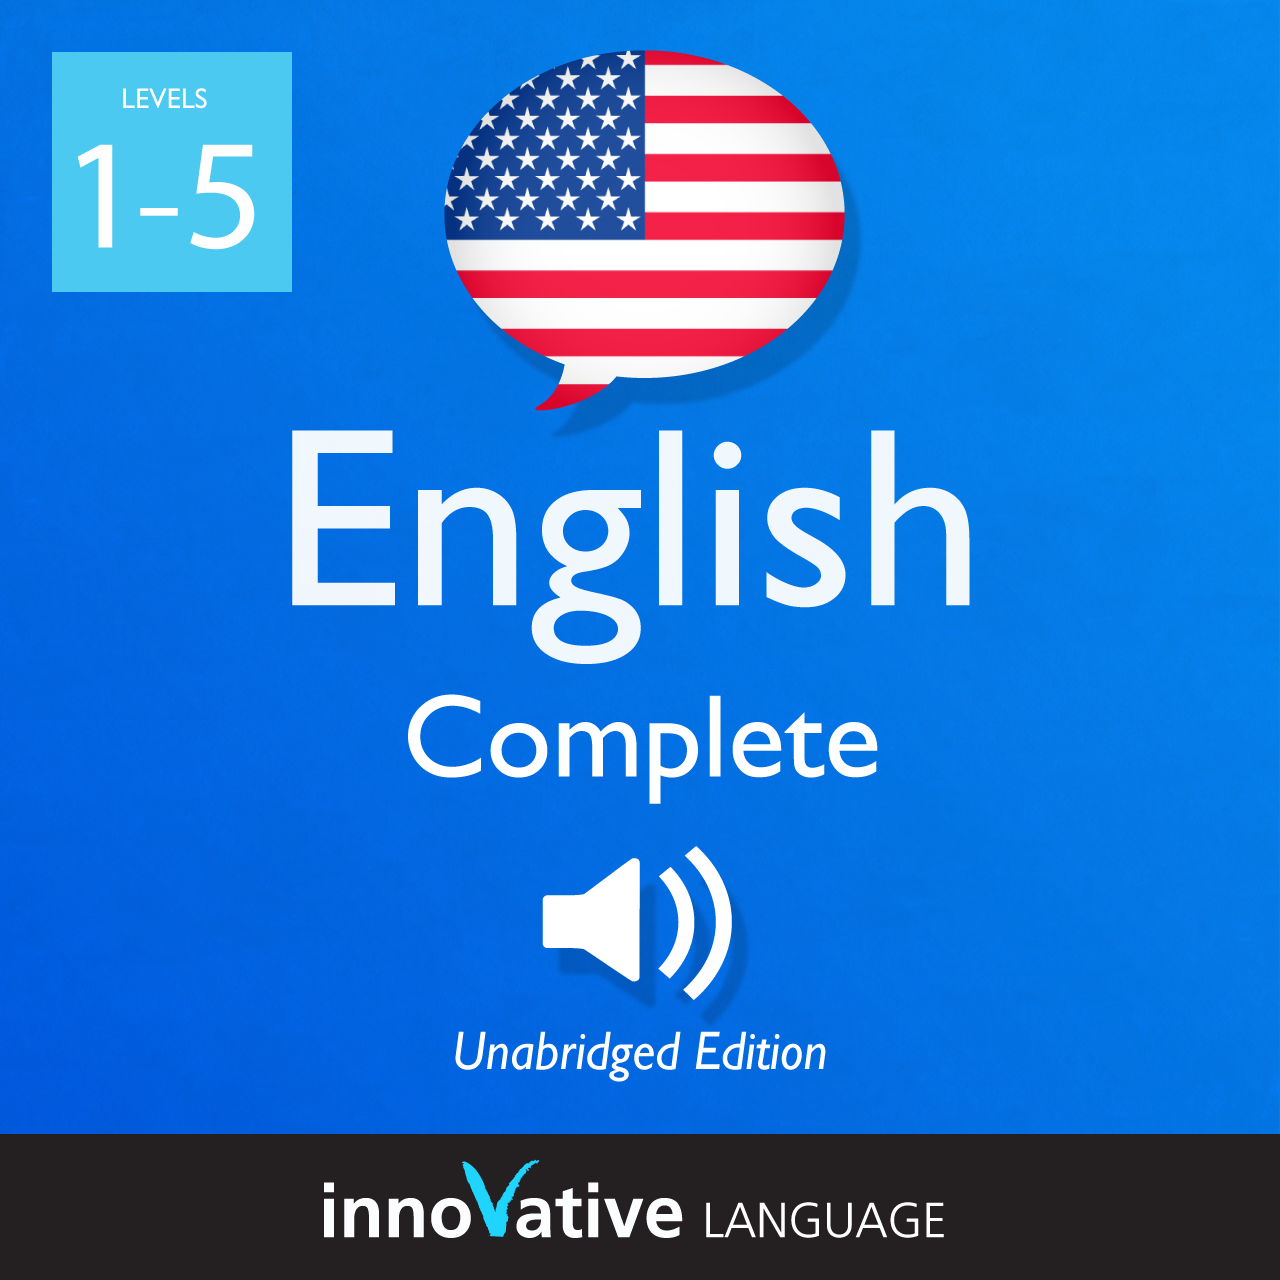 [Audiobook] Learn English - Level 1-5: Complete English